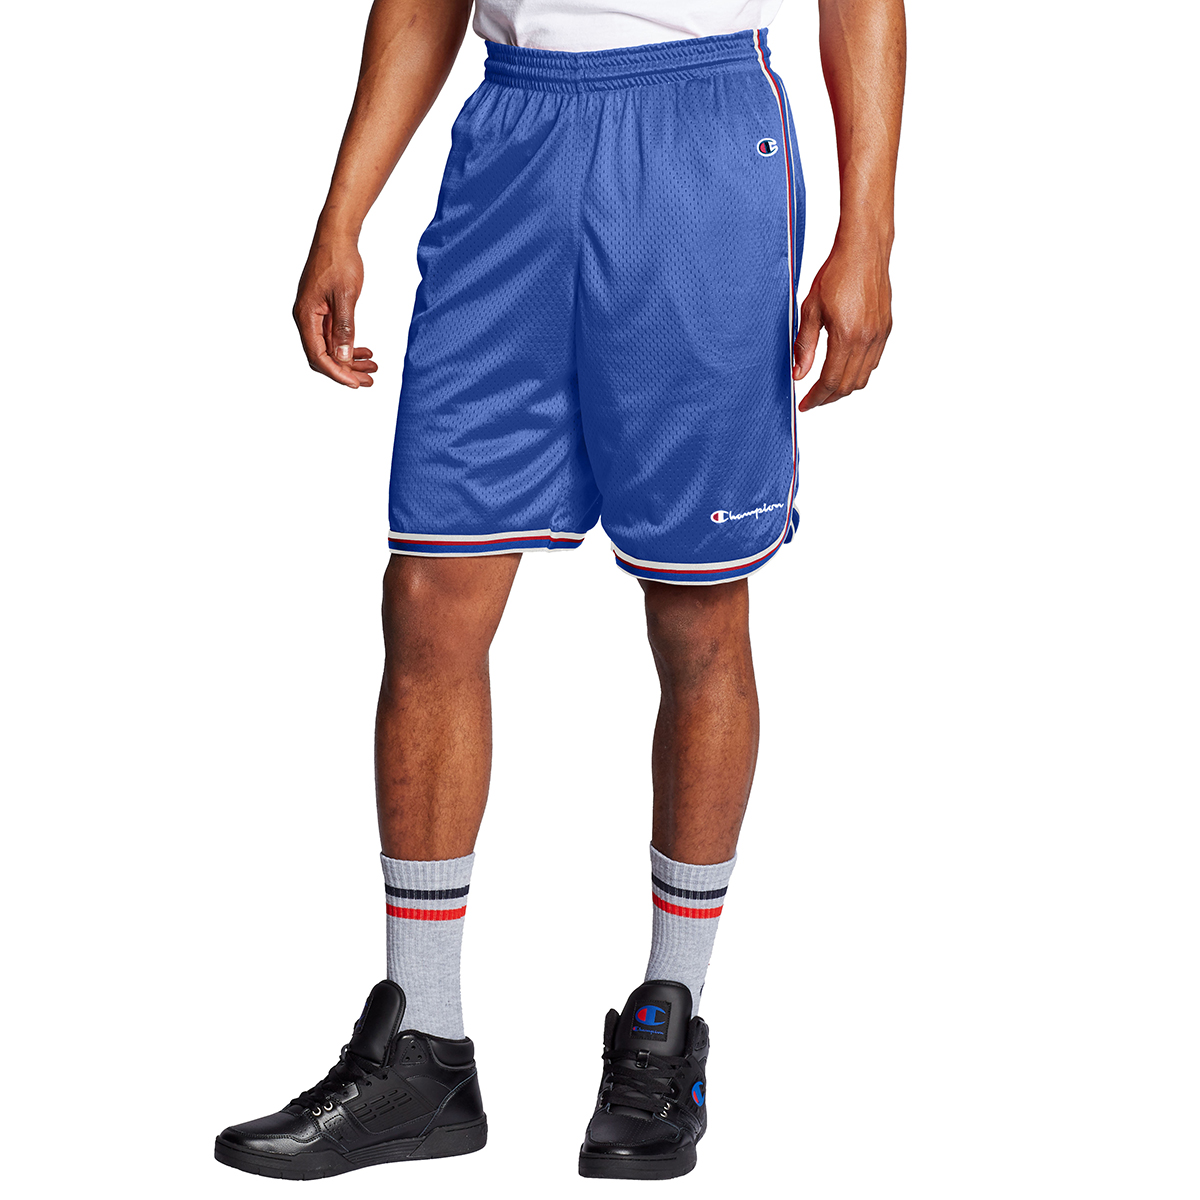 Champion Men's Core Basketball Shorts - Blue, L